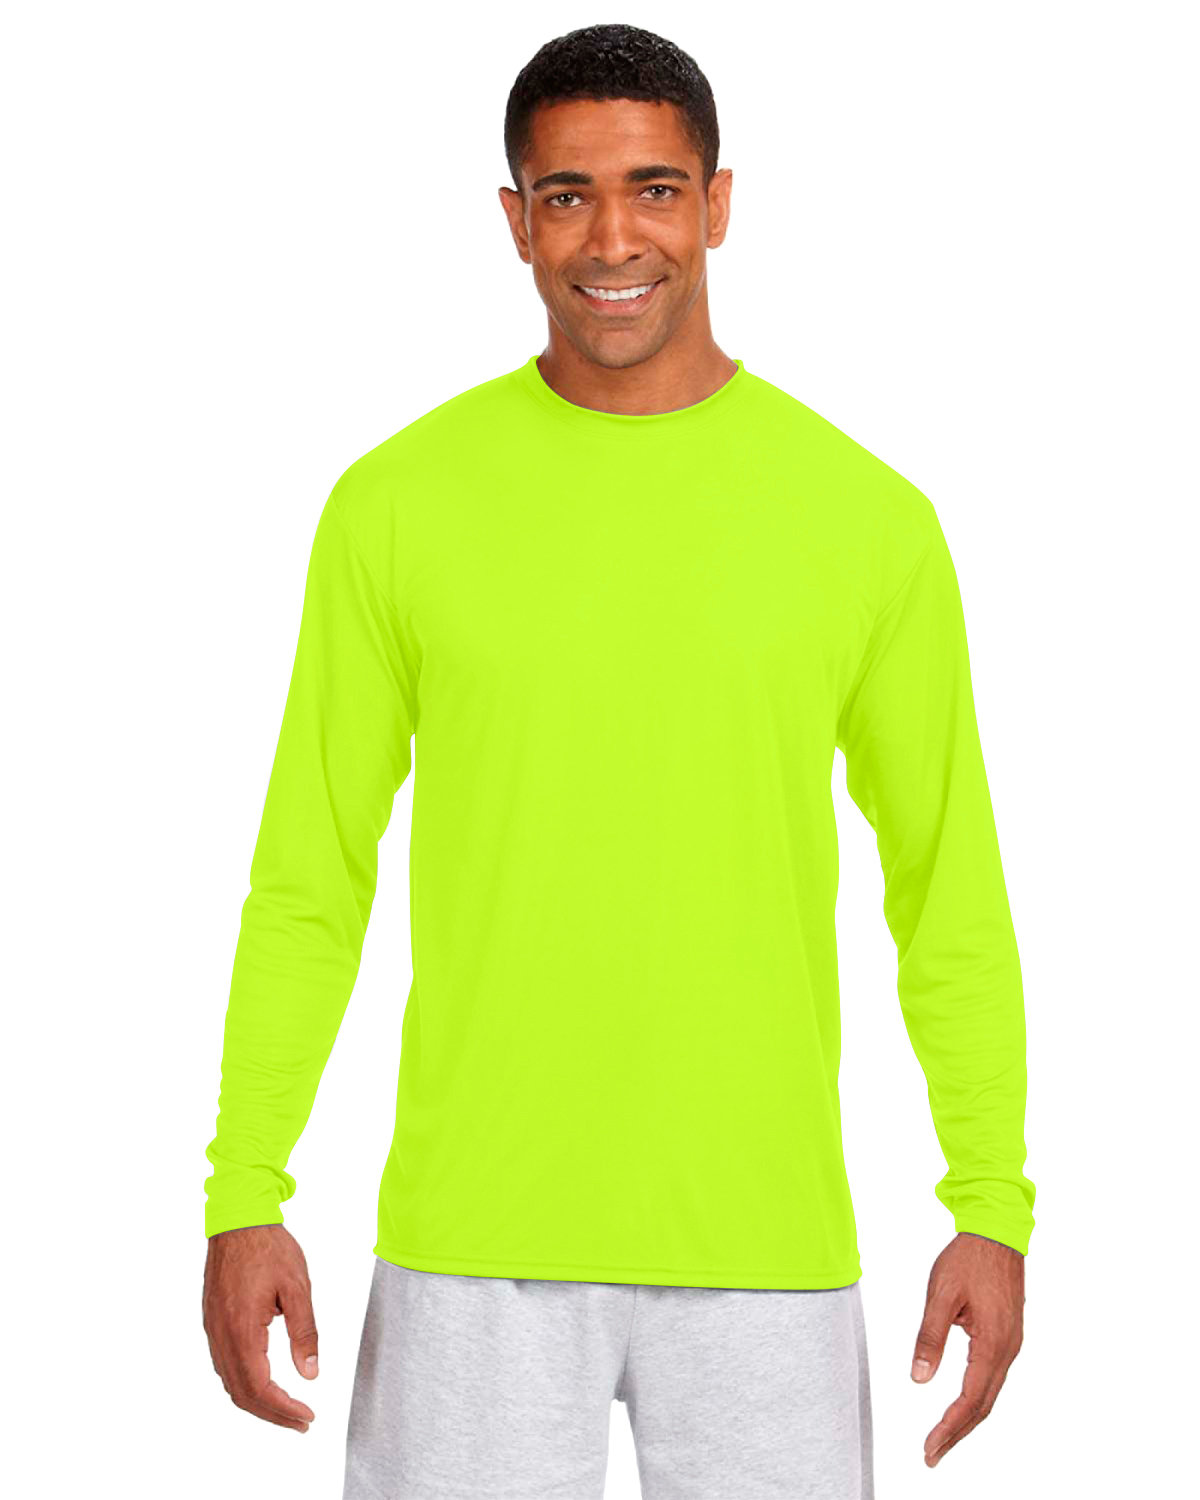 A4 Men's Cooling Performance Long Sleeve T-Shirt SAFETY YELLOW